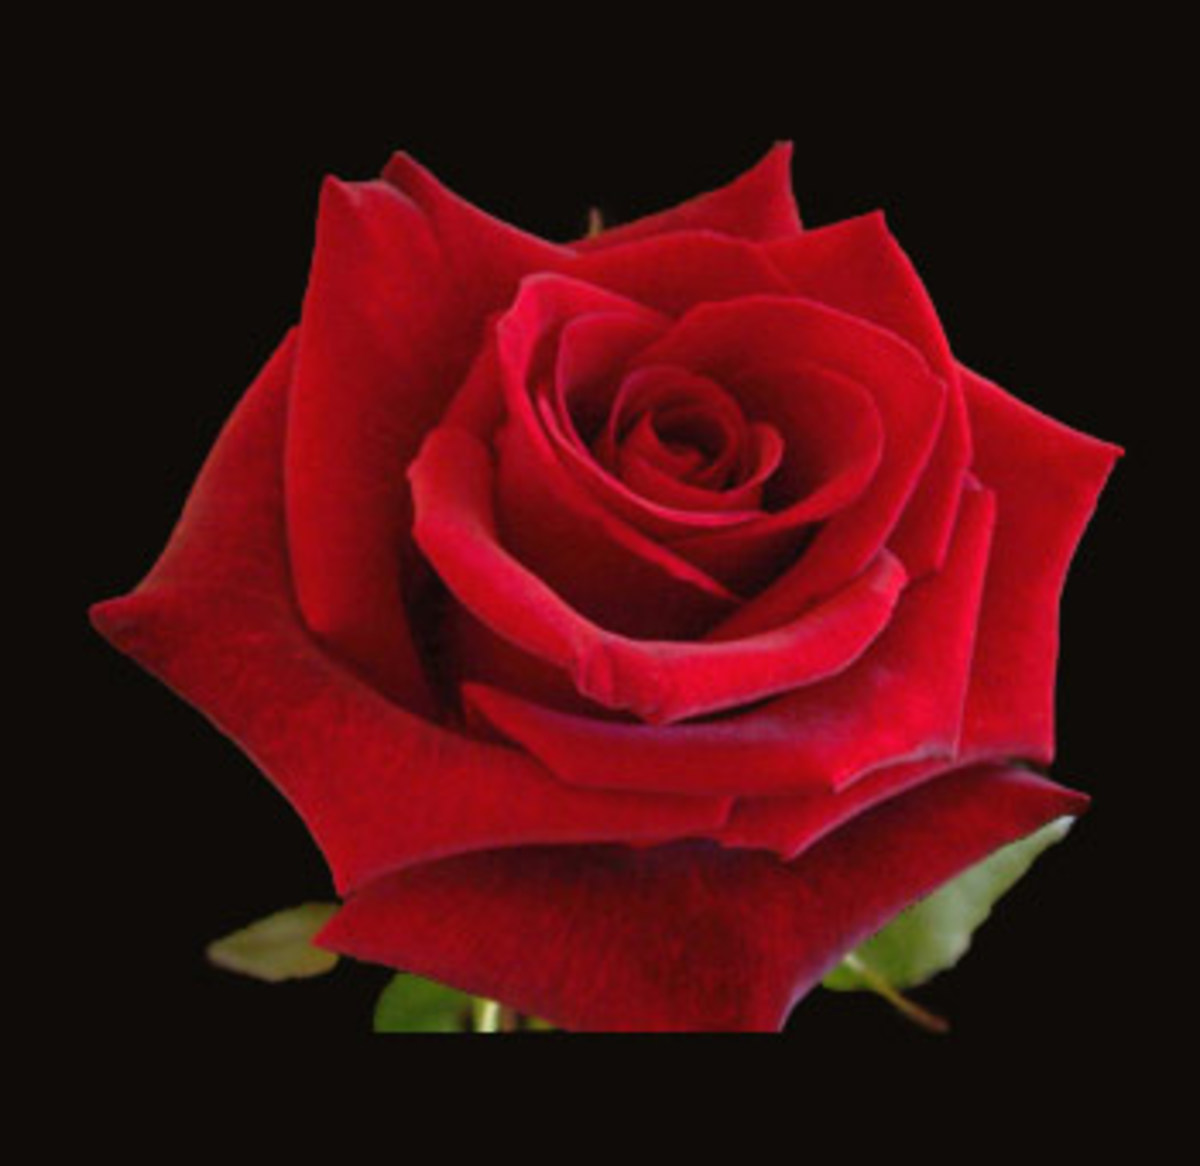 red roses have become a popular symbol of Valentine's Day and of love.